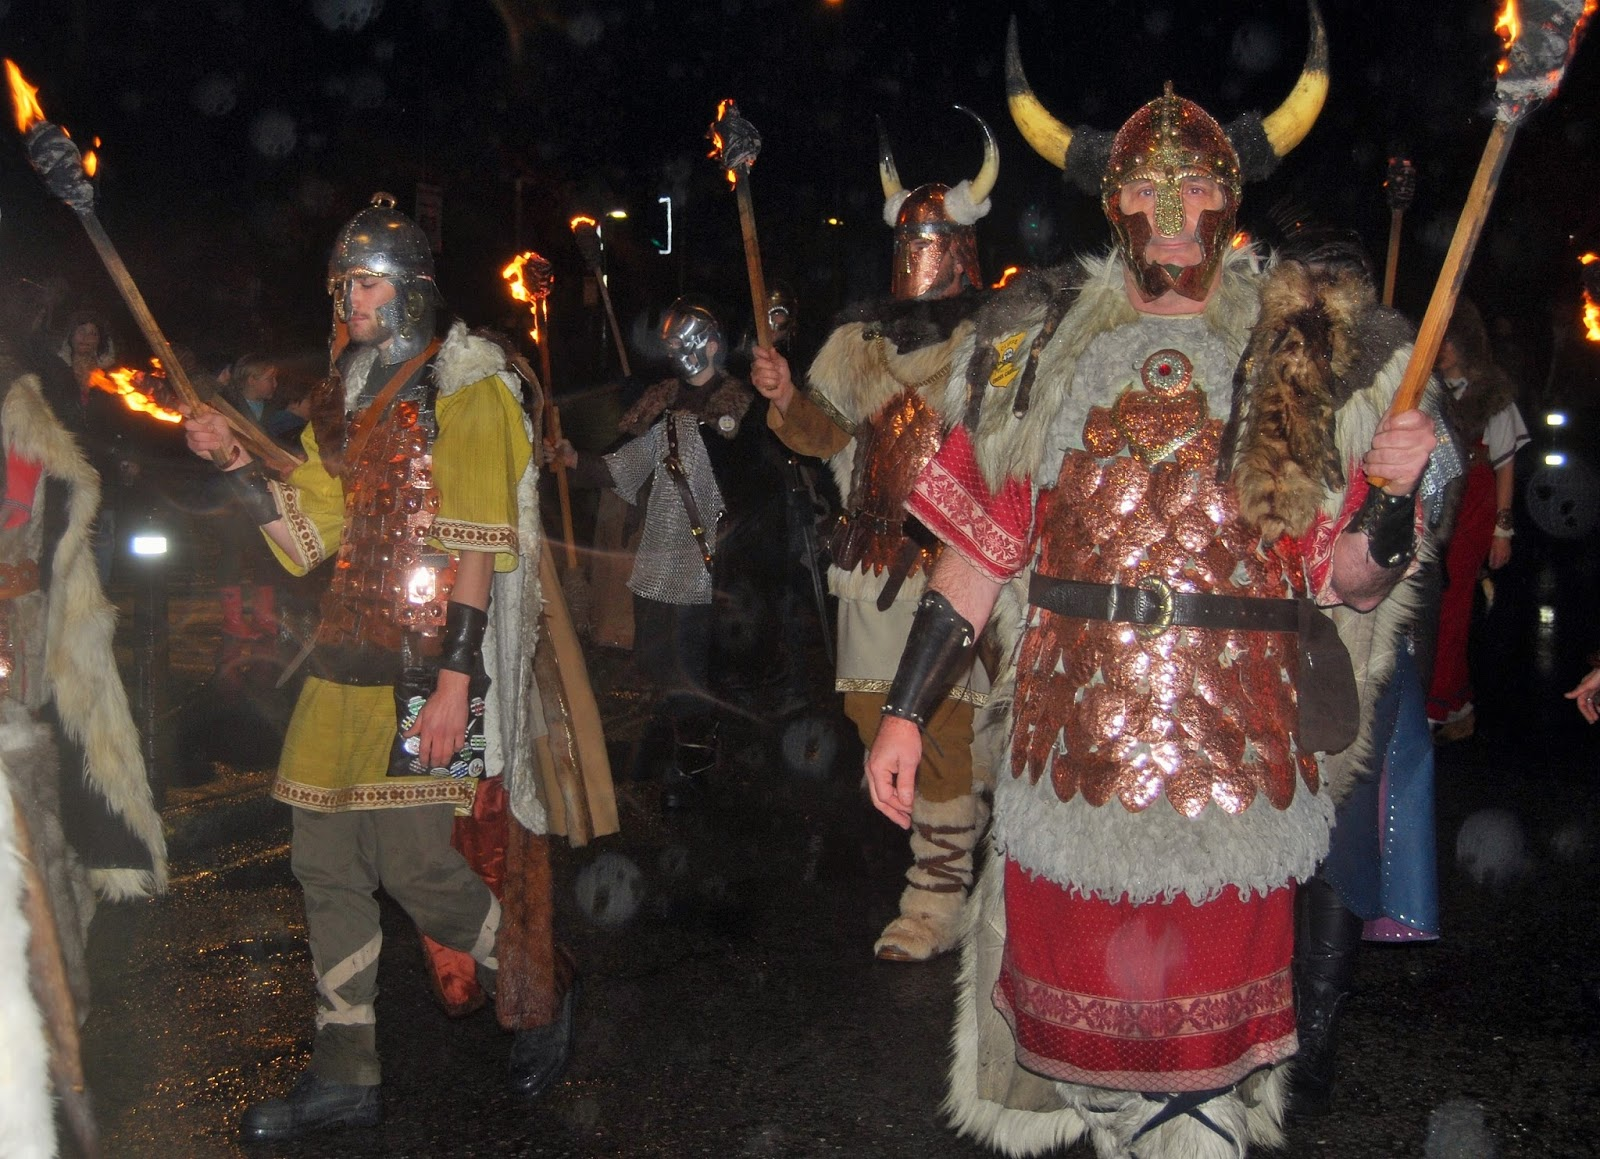 Lewes Bonfire 2015 photo by Modern Bric a Brac